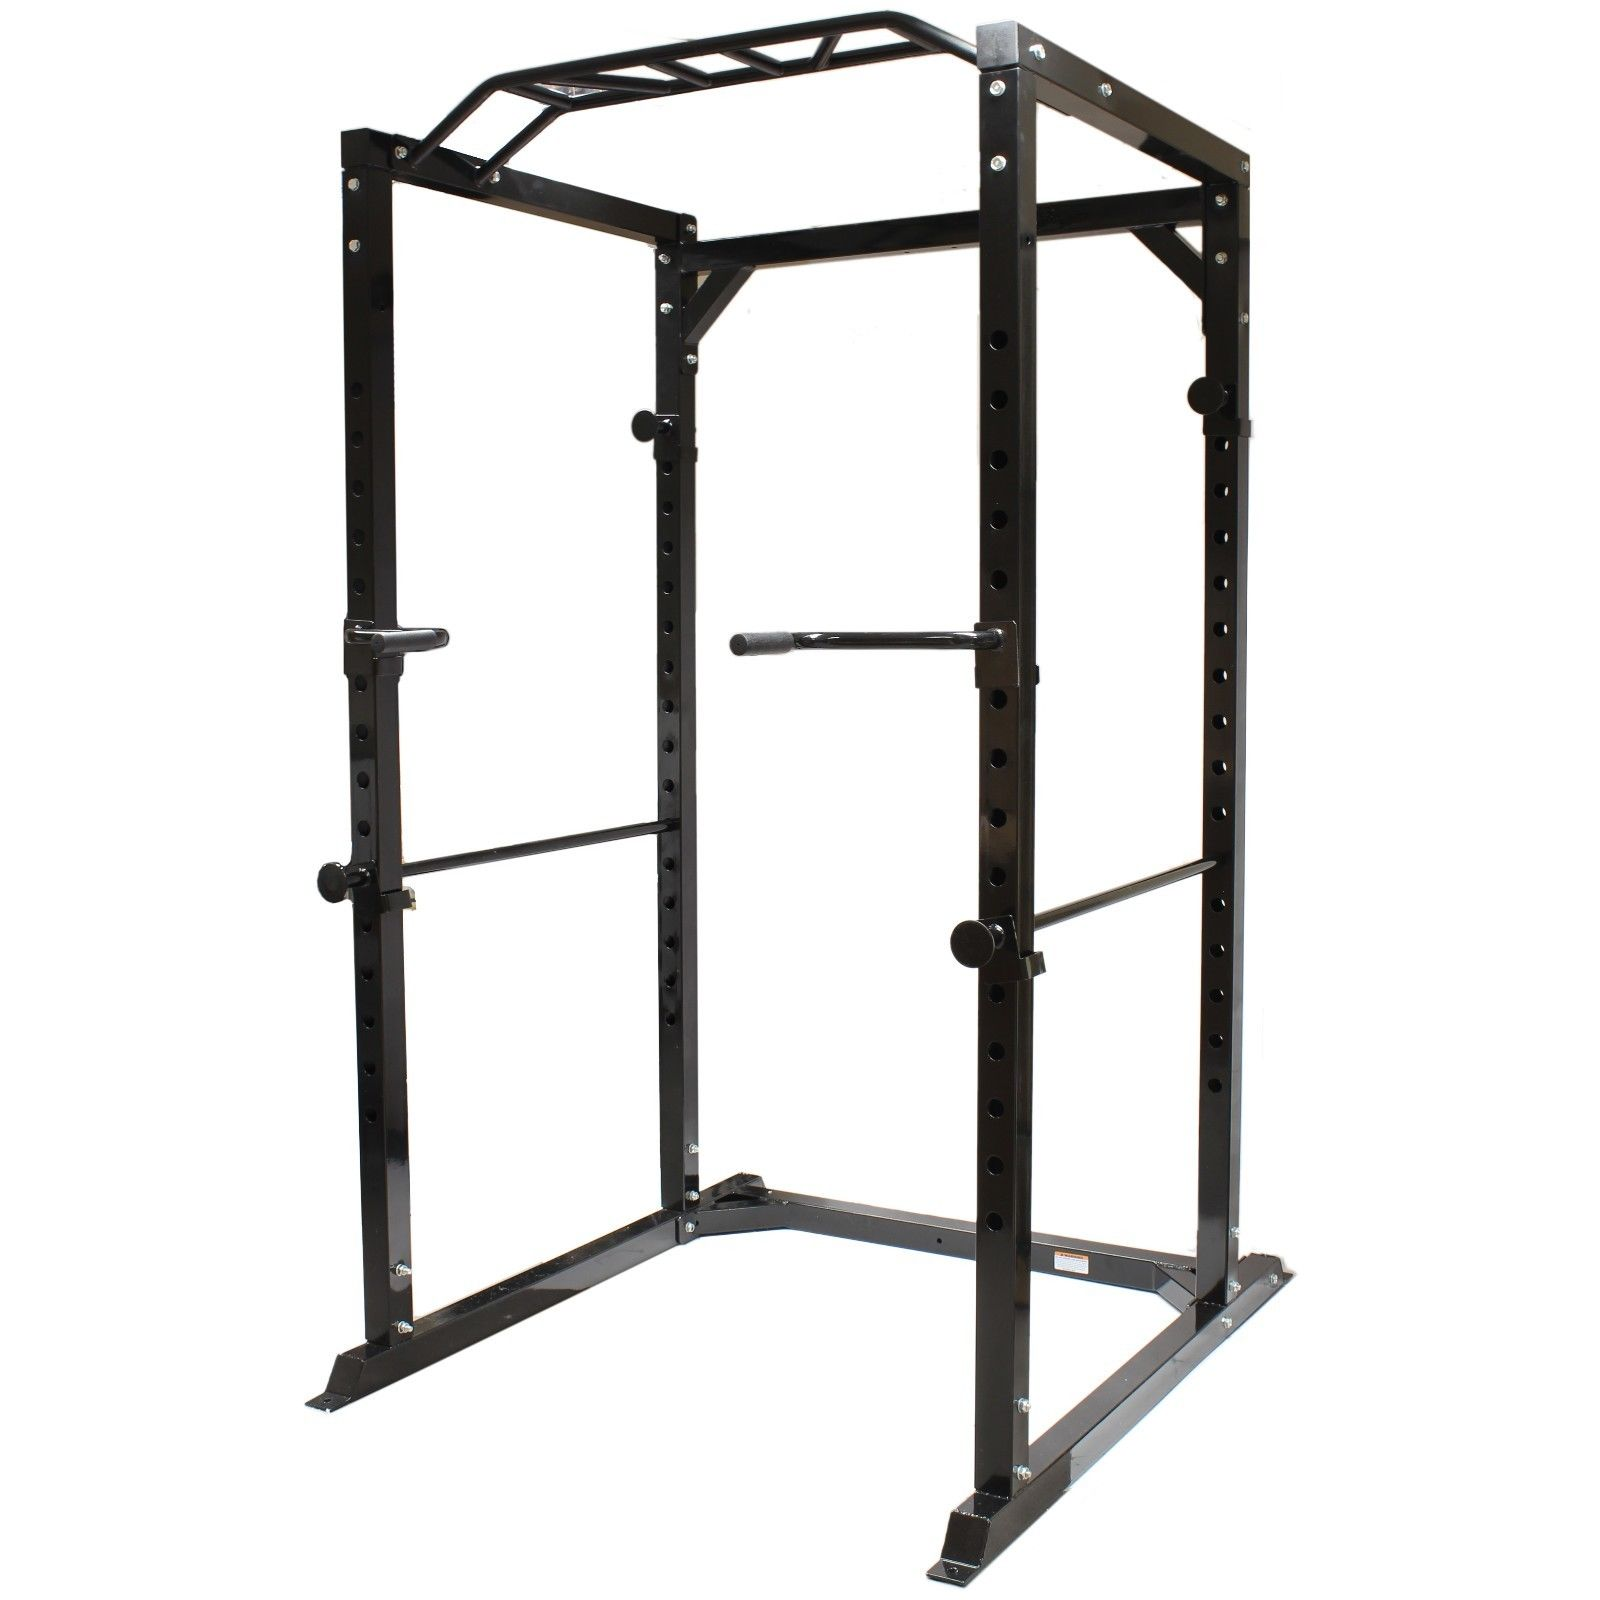 Tnp Heavy Duty Pro Power Cage Rack Workout Cage Multi Gym